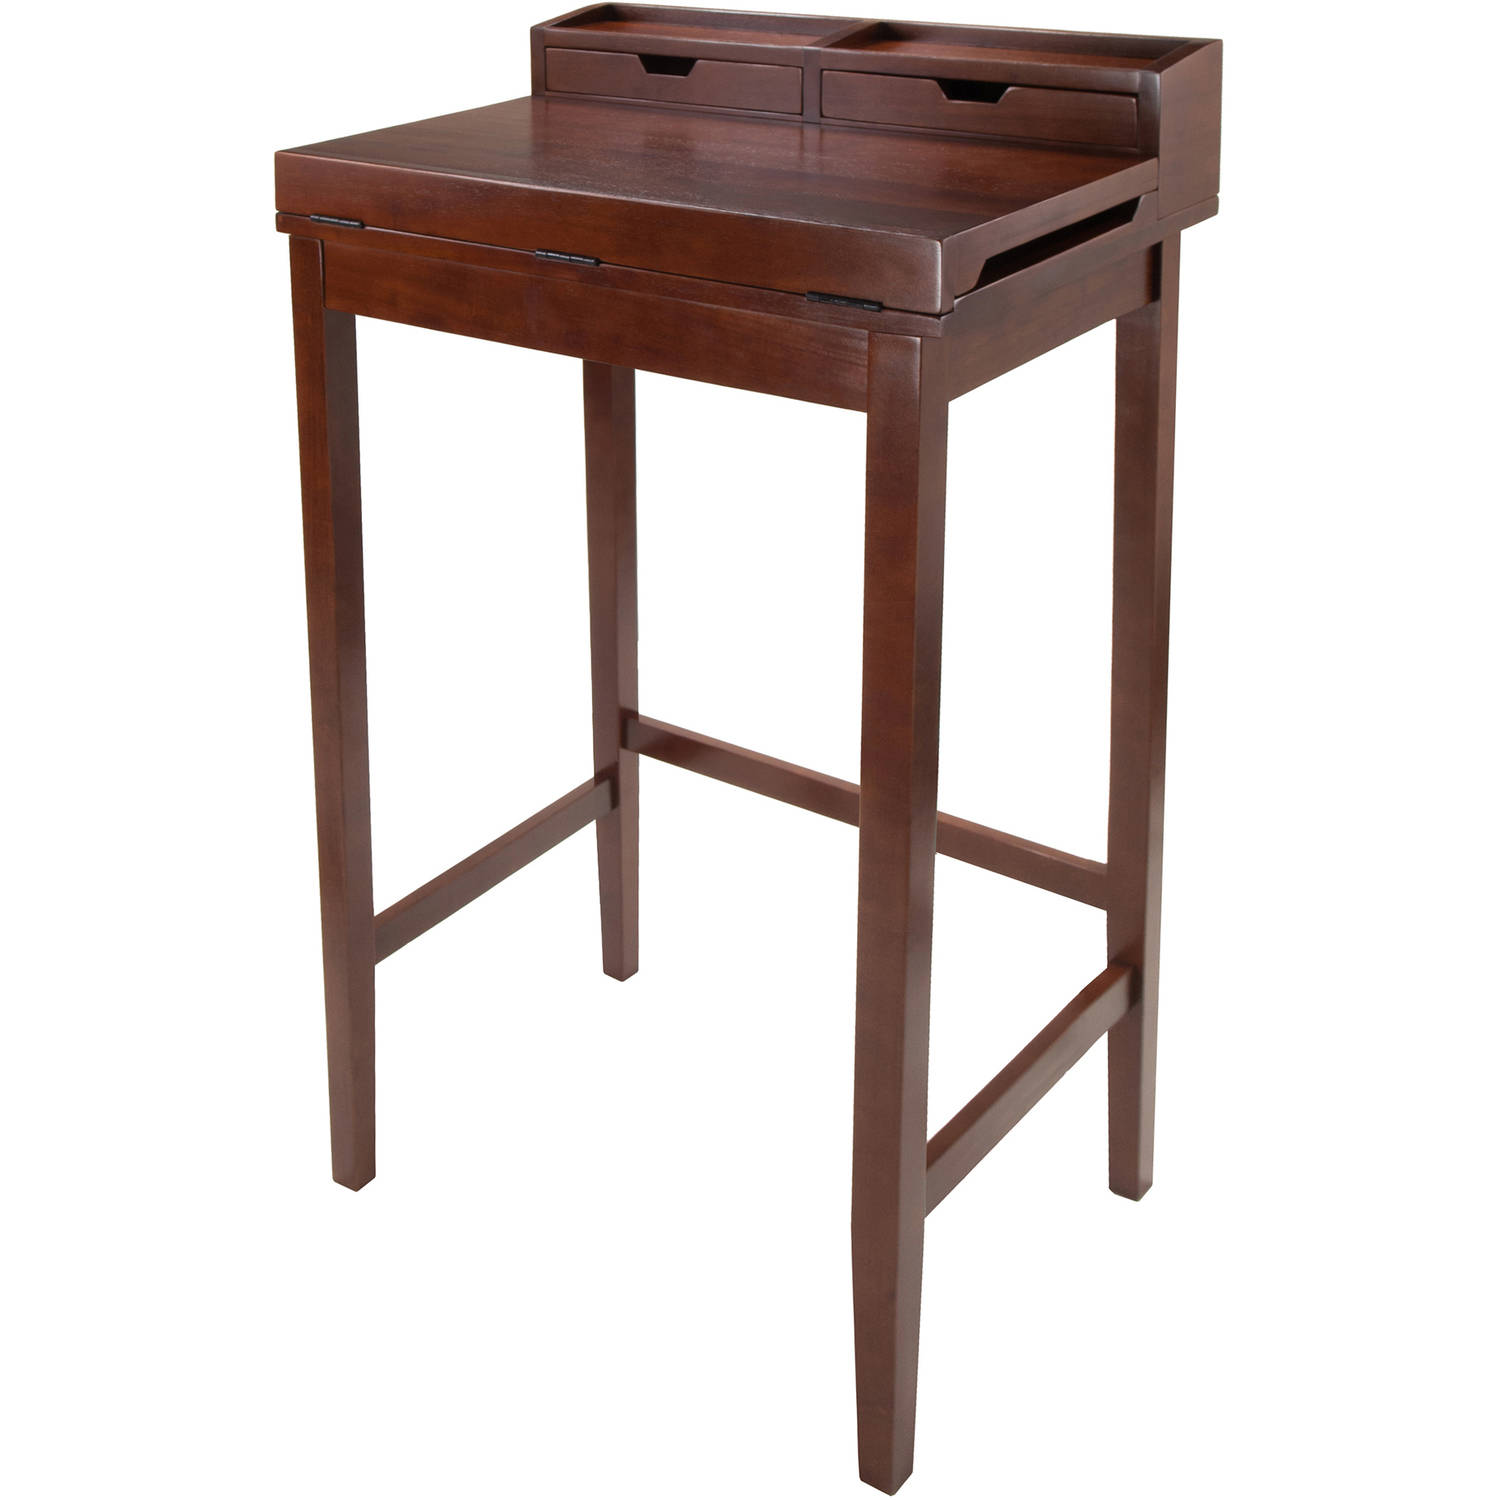 Winsome Brighton High Desk, Walnut